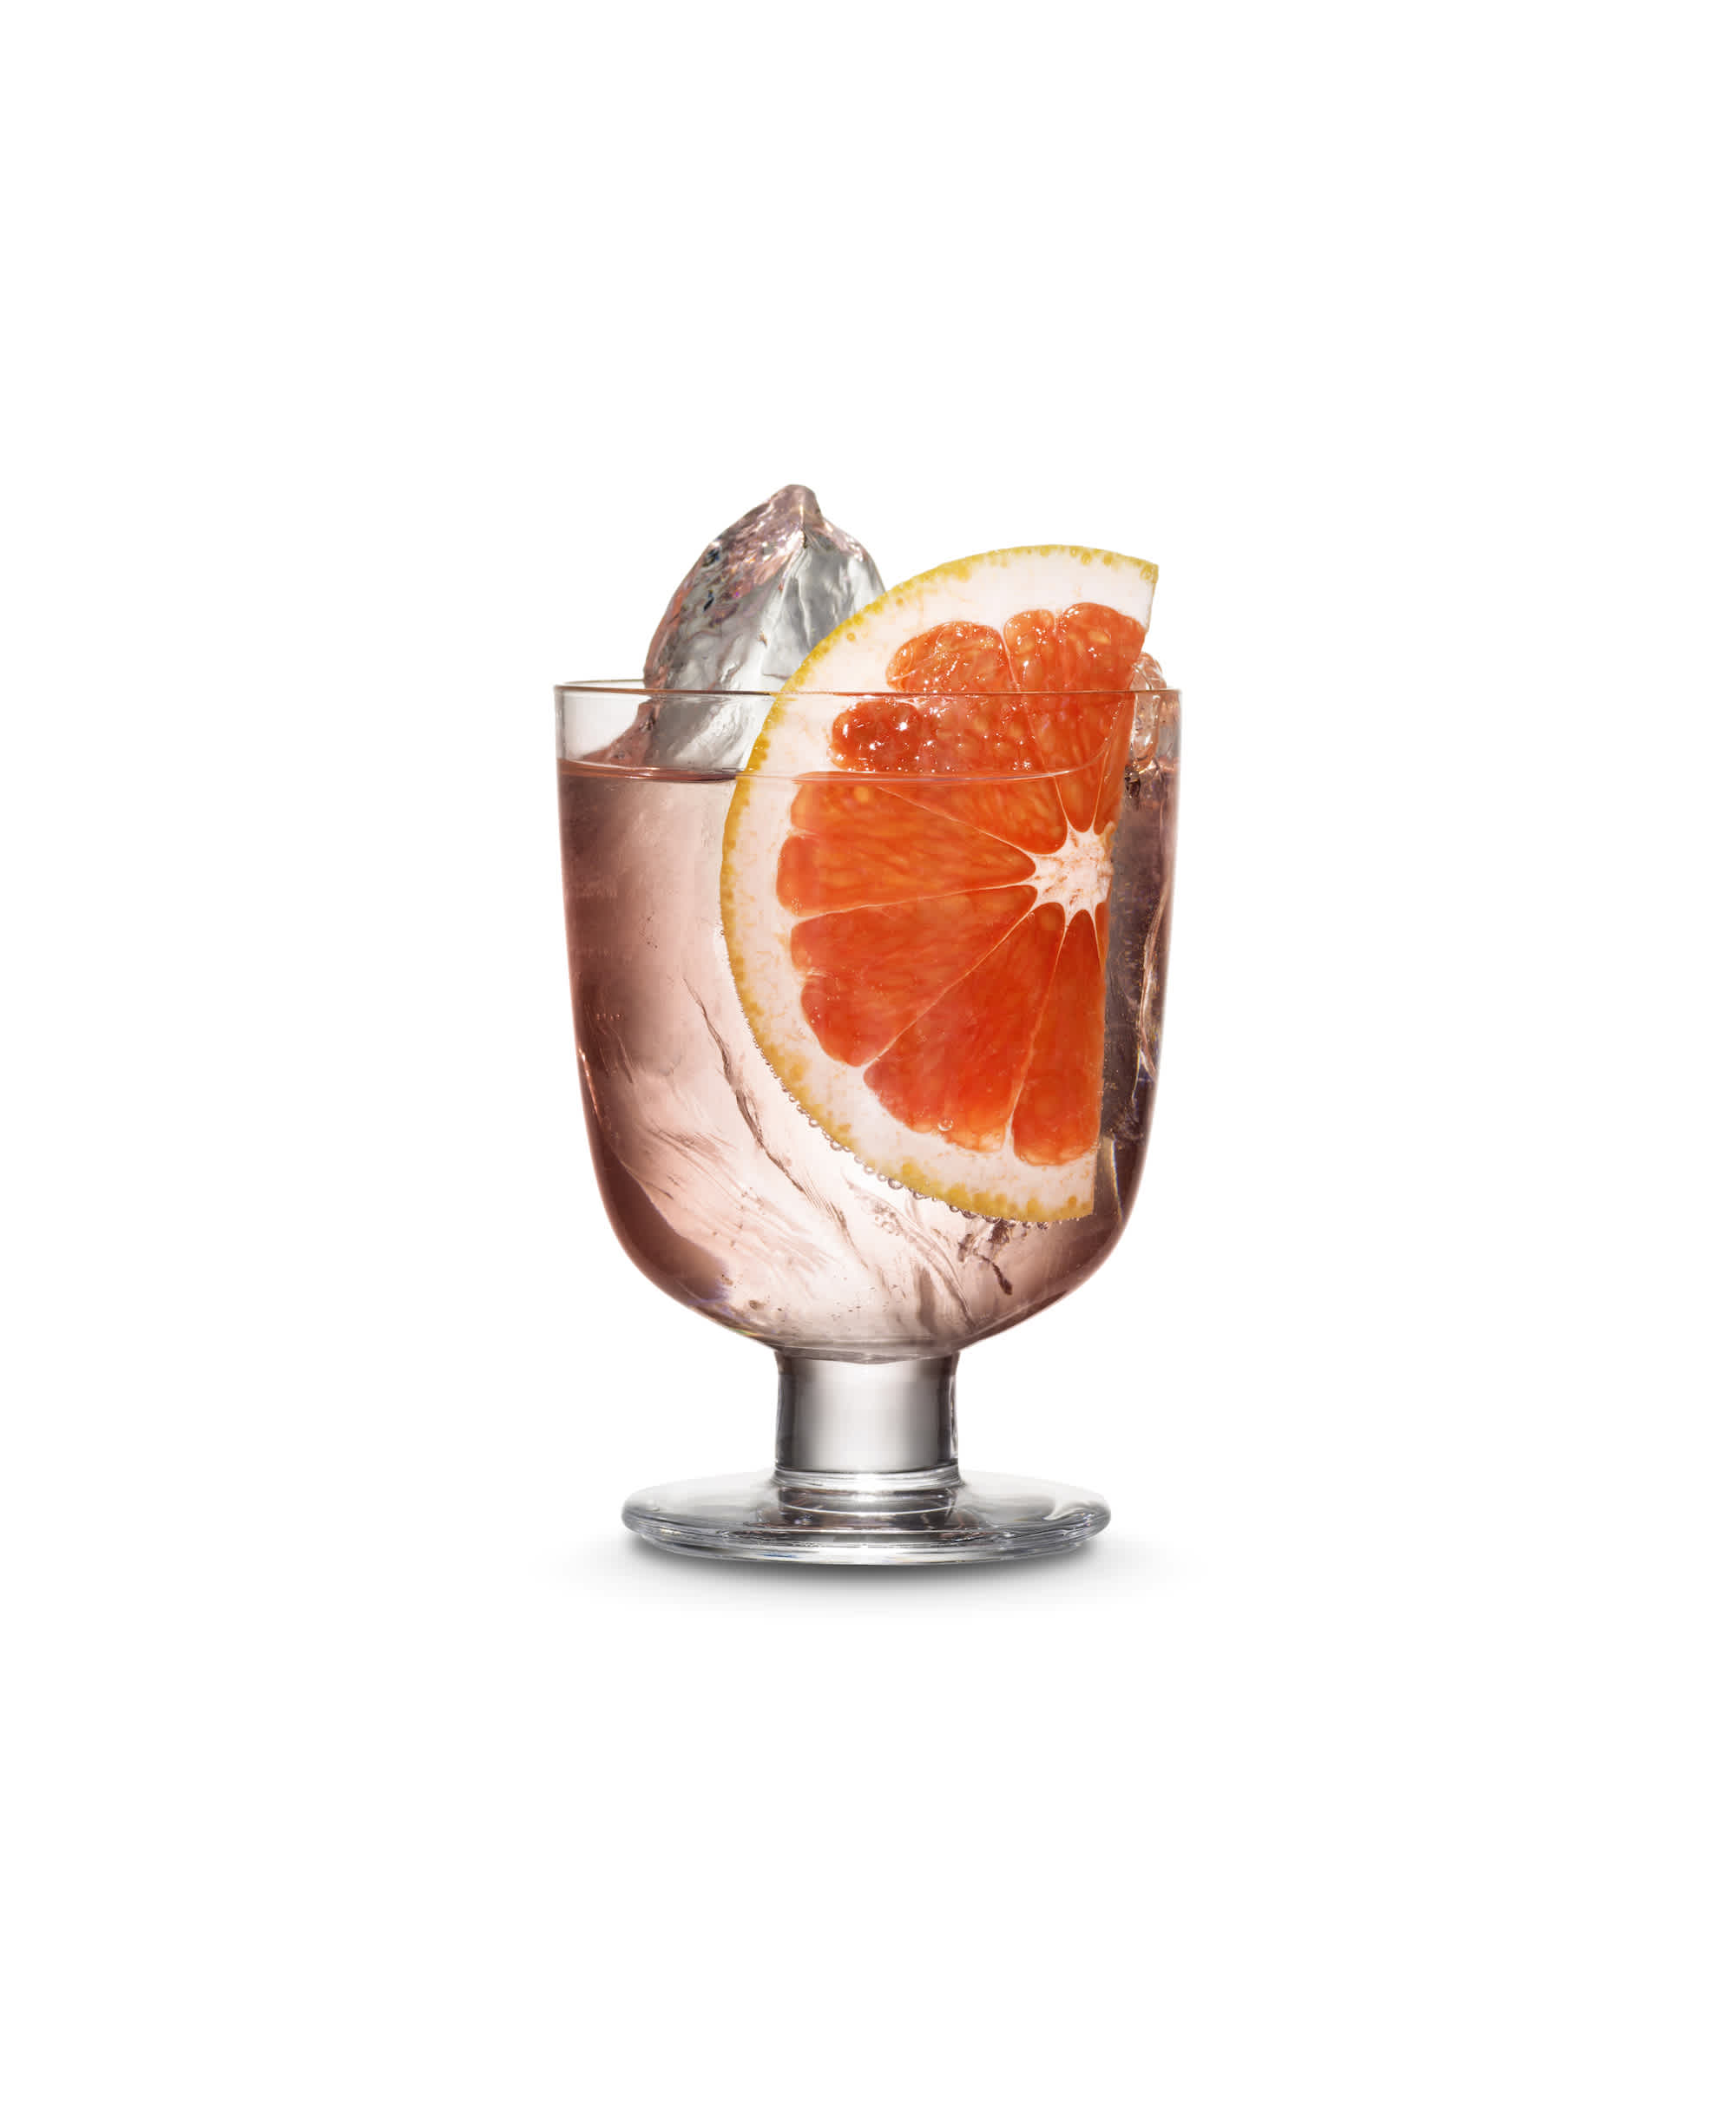 Cocktail with pink gin, tonic water and a slice of grapefruit.